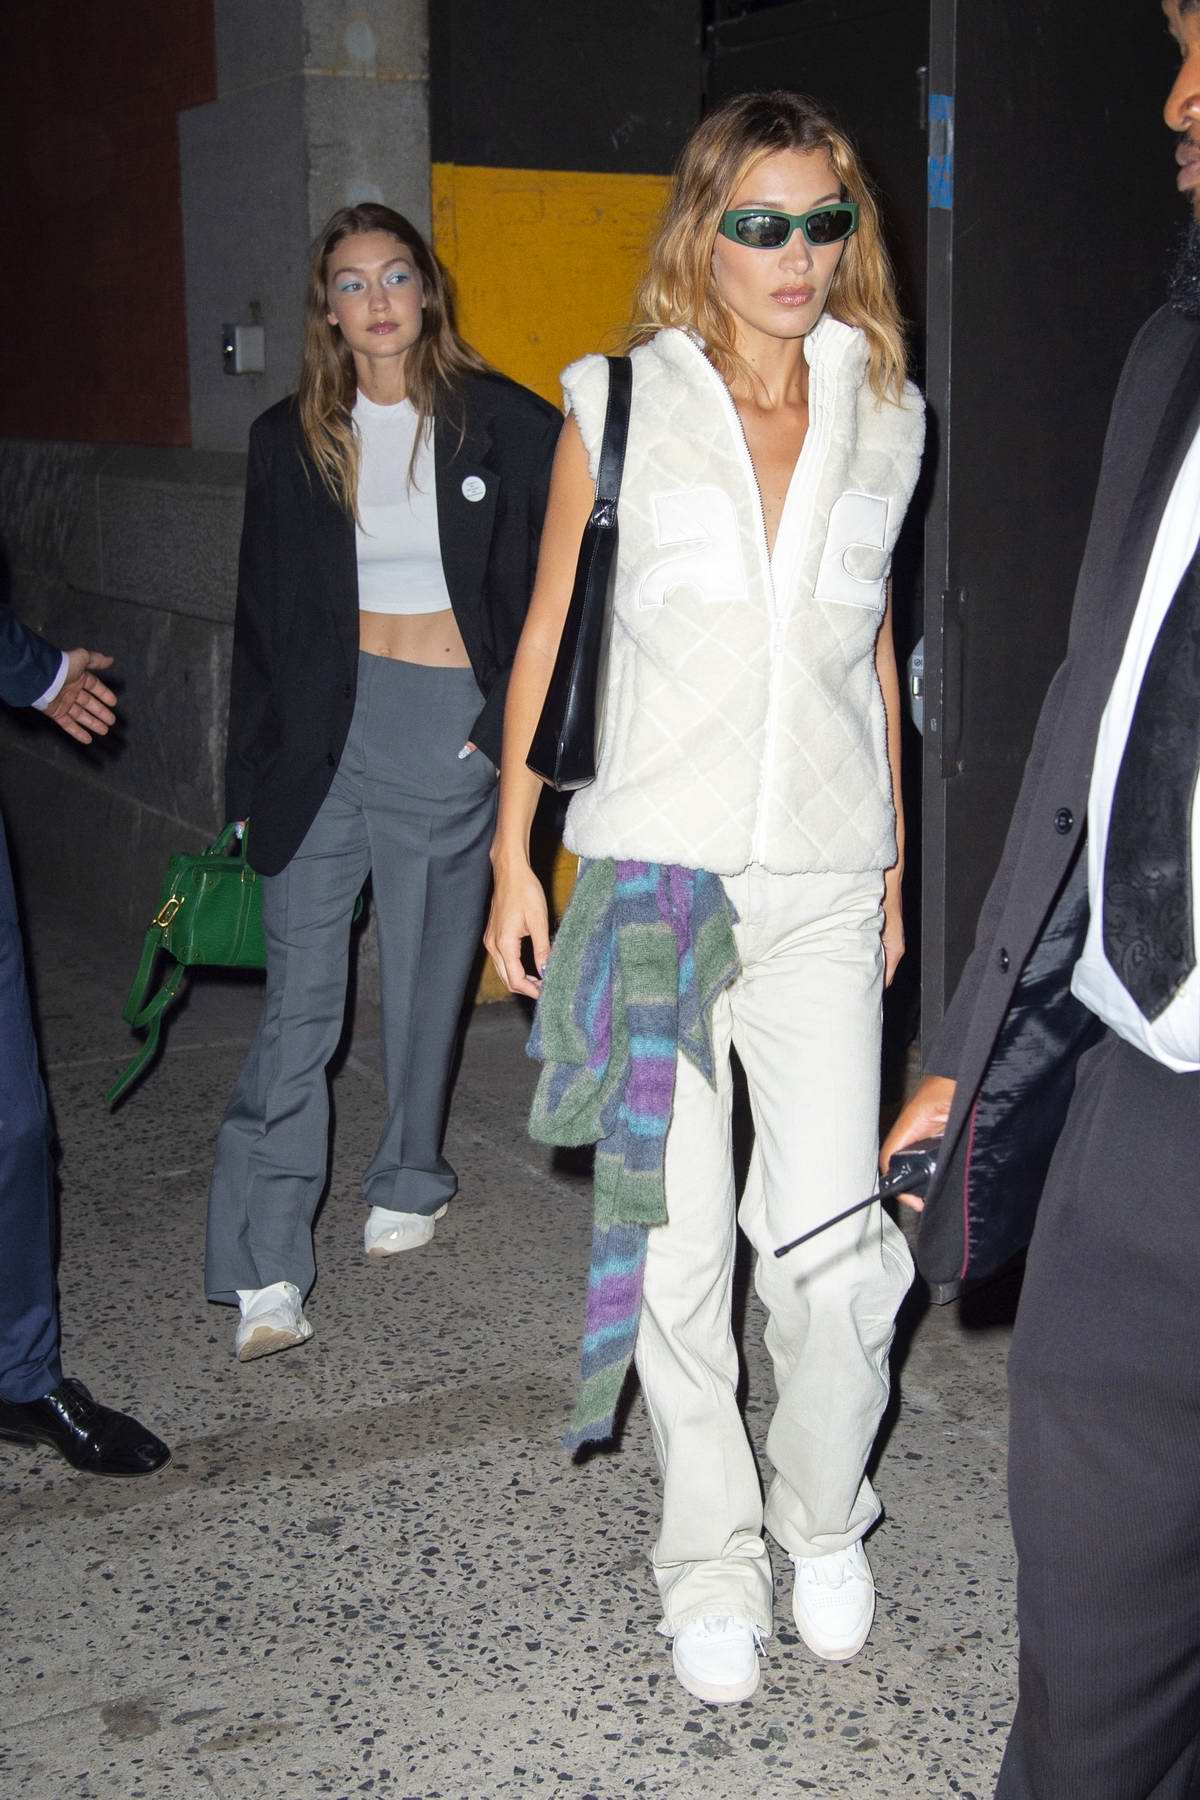 Gigi and Bella Hadid seen leaving the Marc Jacobs Spring 2020 Show at Park Avenue Armory in New York City